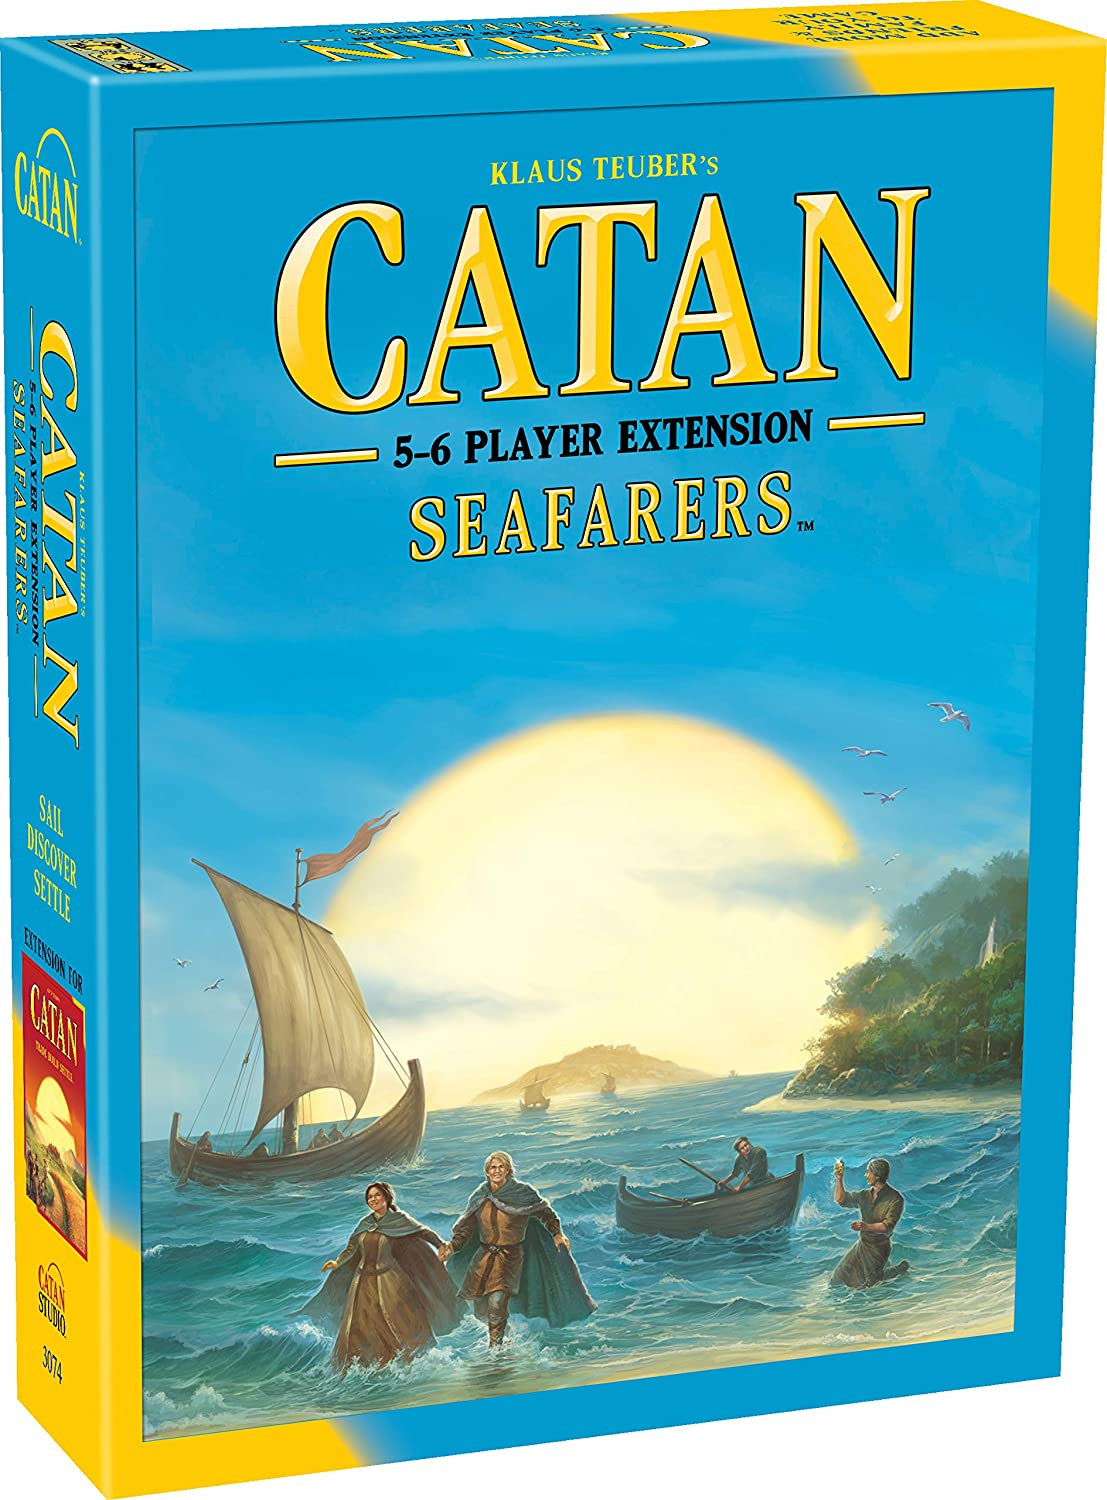 Catan: Seafarers 5-6 player Extension: Amazon.es: Juguetes y juegos